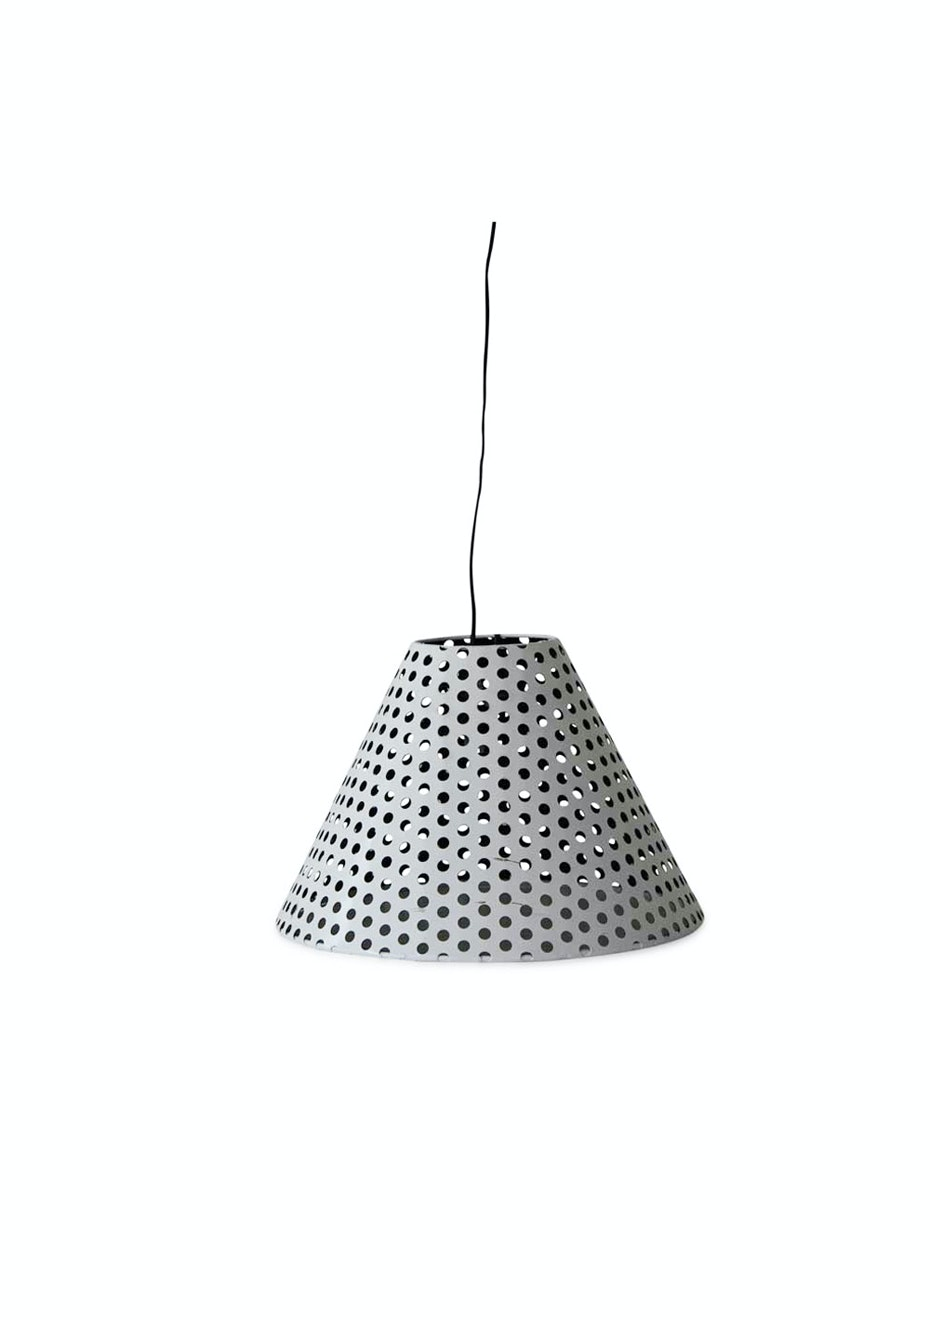 Me & My Trend - White Perforated Shade